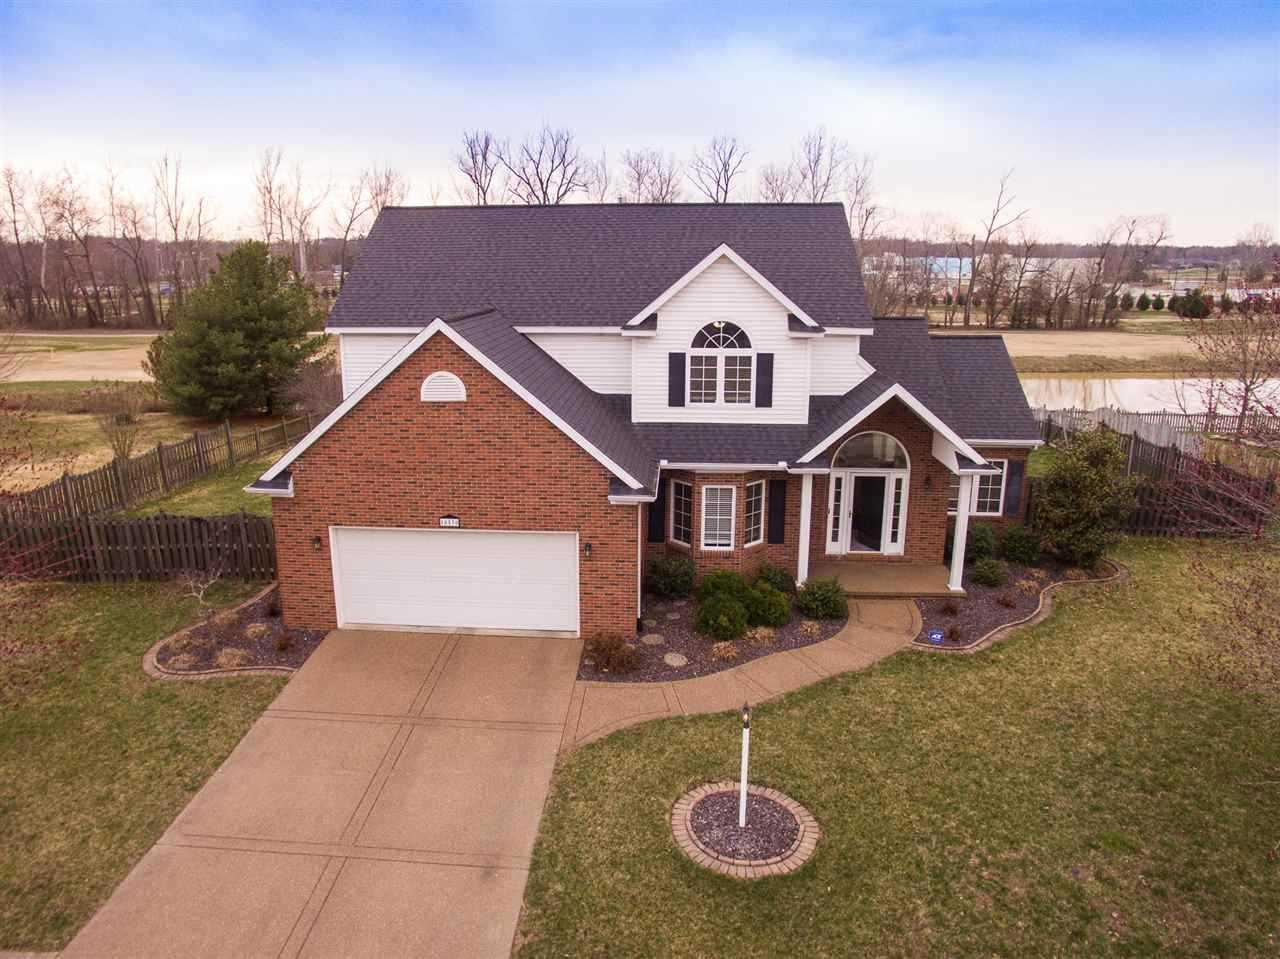 10530 Eagle Crossing Drive Evansville, IN 47725 | MLS 201808908 Photo 1